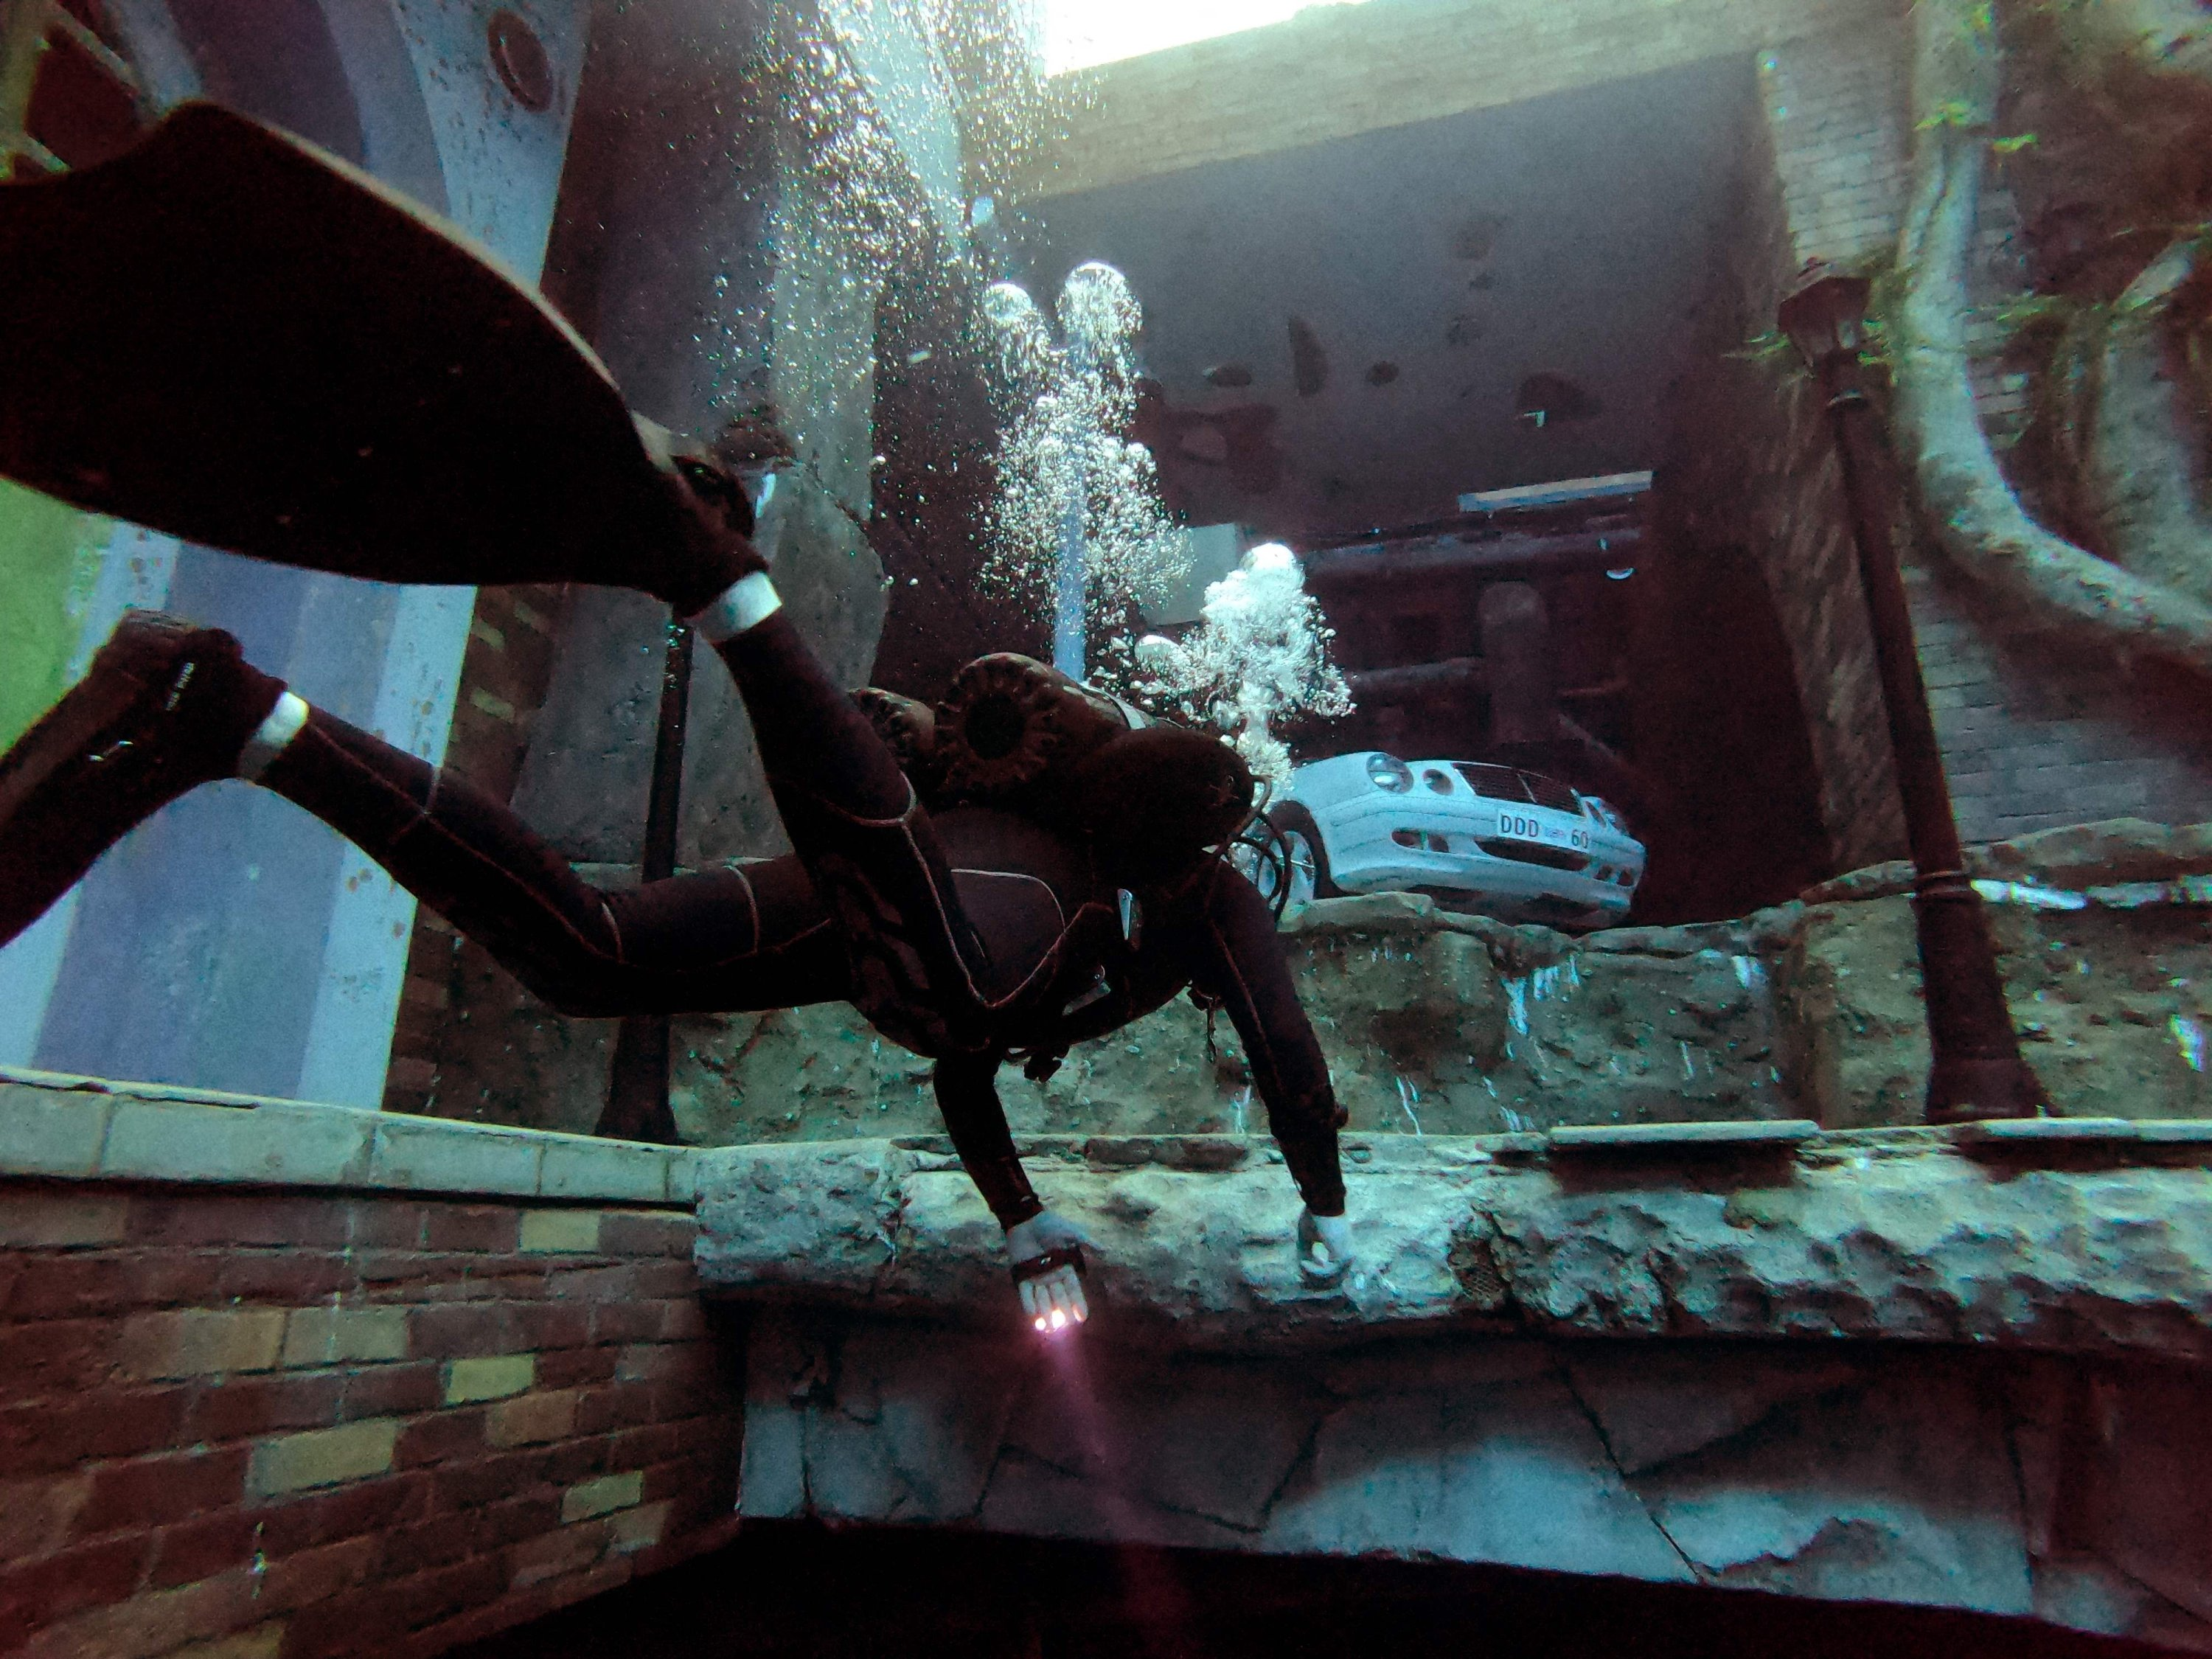 A diver explores a mock sunken city as he experiences Deep Dive Dubai, the deepest swimming pool in the world reaching 60 meters (nearly 200 feet), in the United Arab Emirates, July 10, 2021. (AFP Photo)